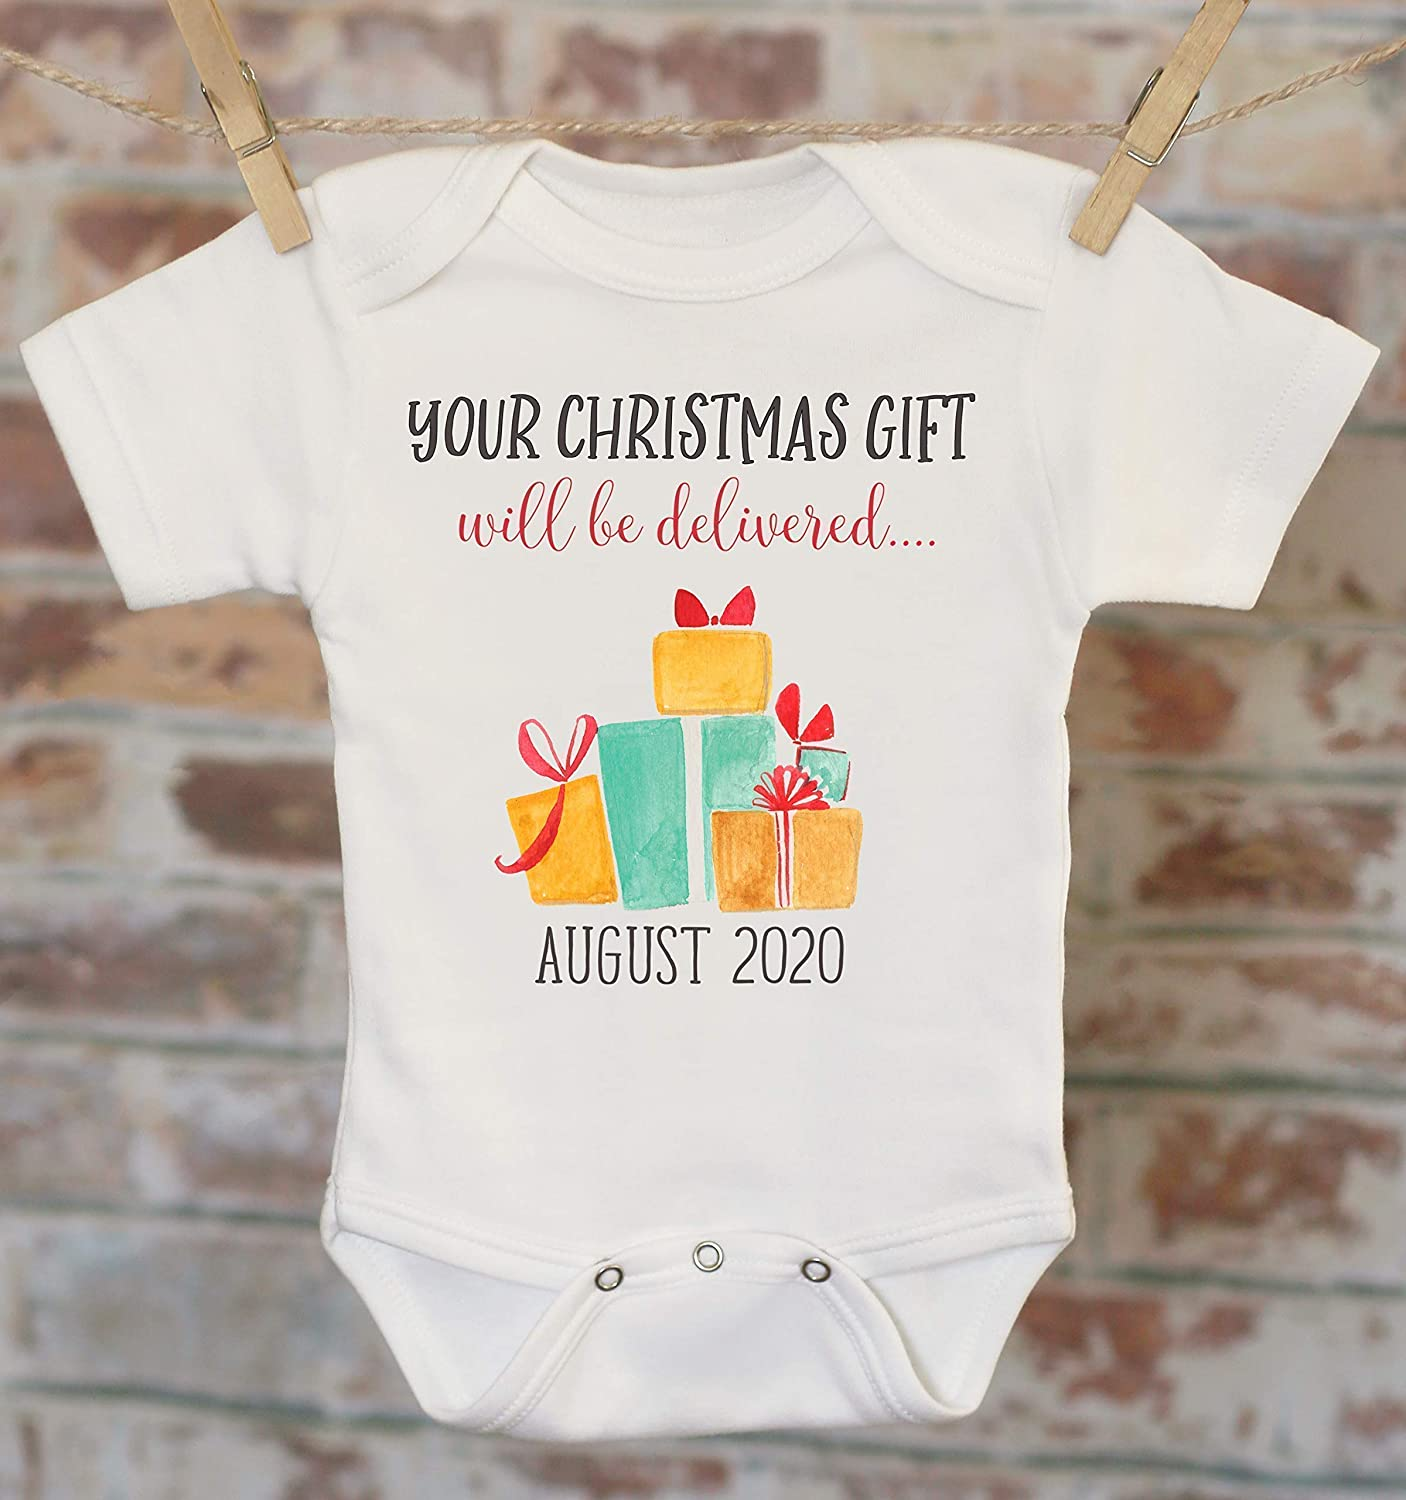 Baby Surprise Coming Soon Baby Baby Announcement Baby Ones Baby Coming Soon Pregnancy Announcement Personalized Bib Birth Announcement